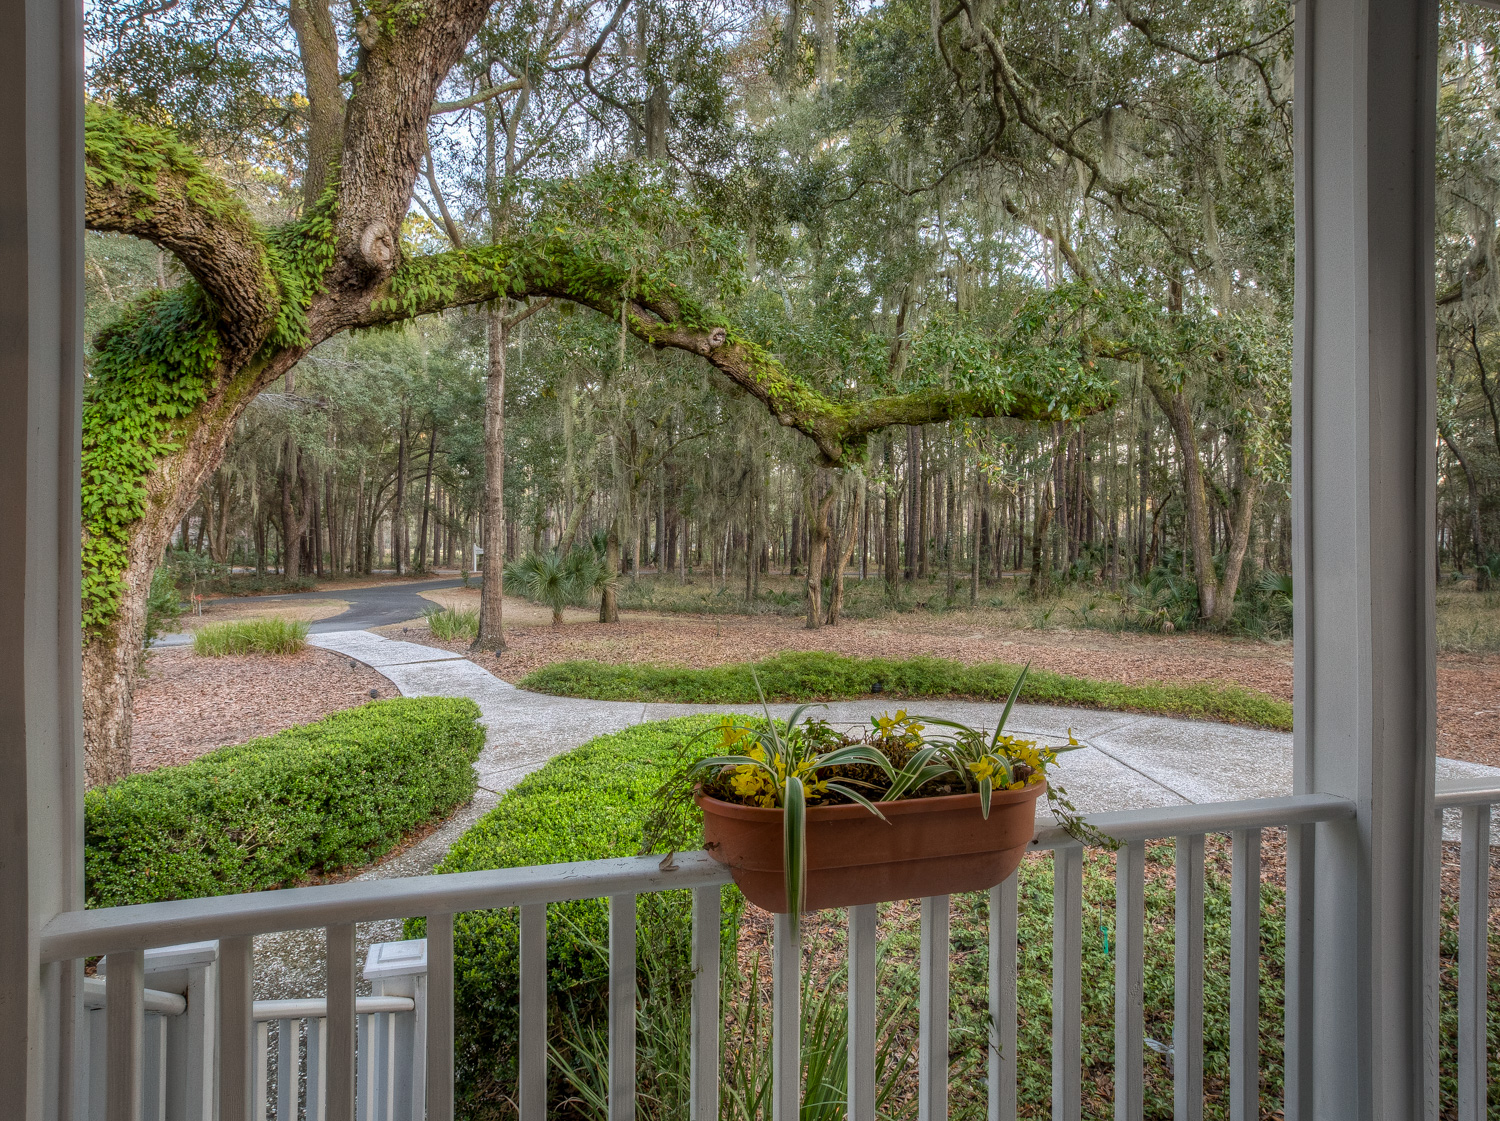 030 front-porch-path-PS1.jpg